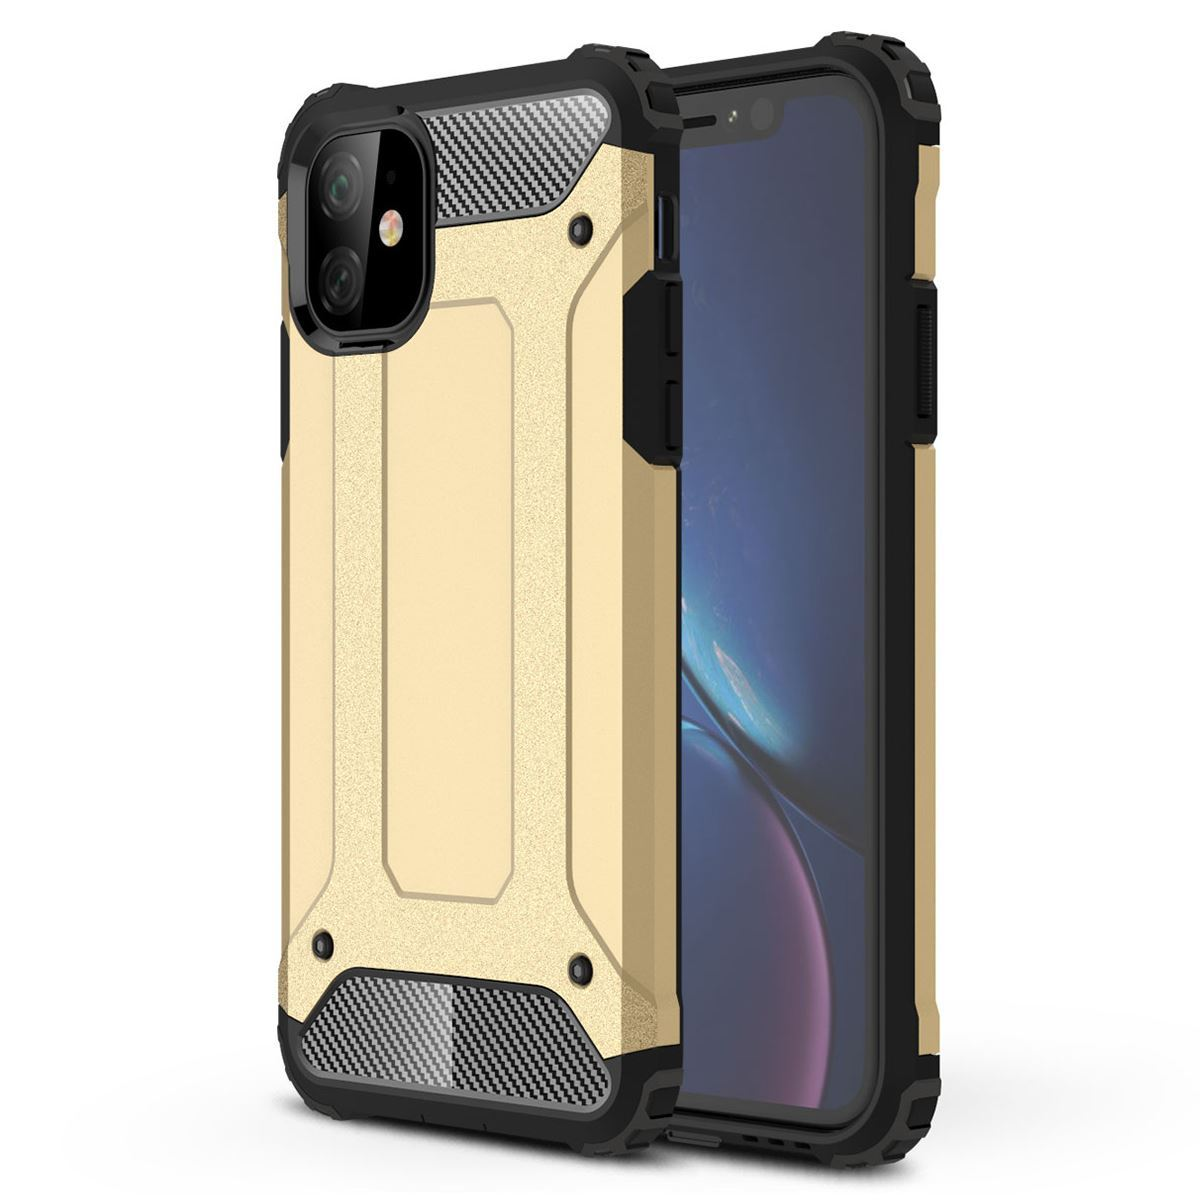 iPhone 11 Case Shockproof Protective Cover - Gold